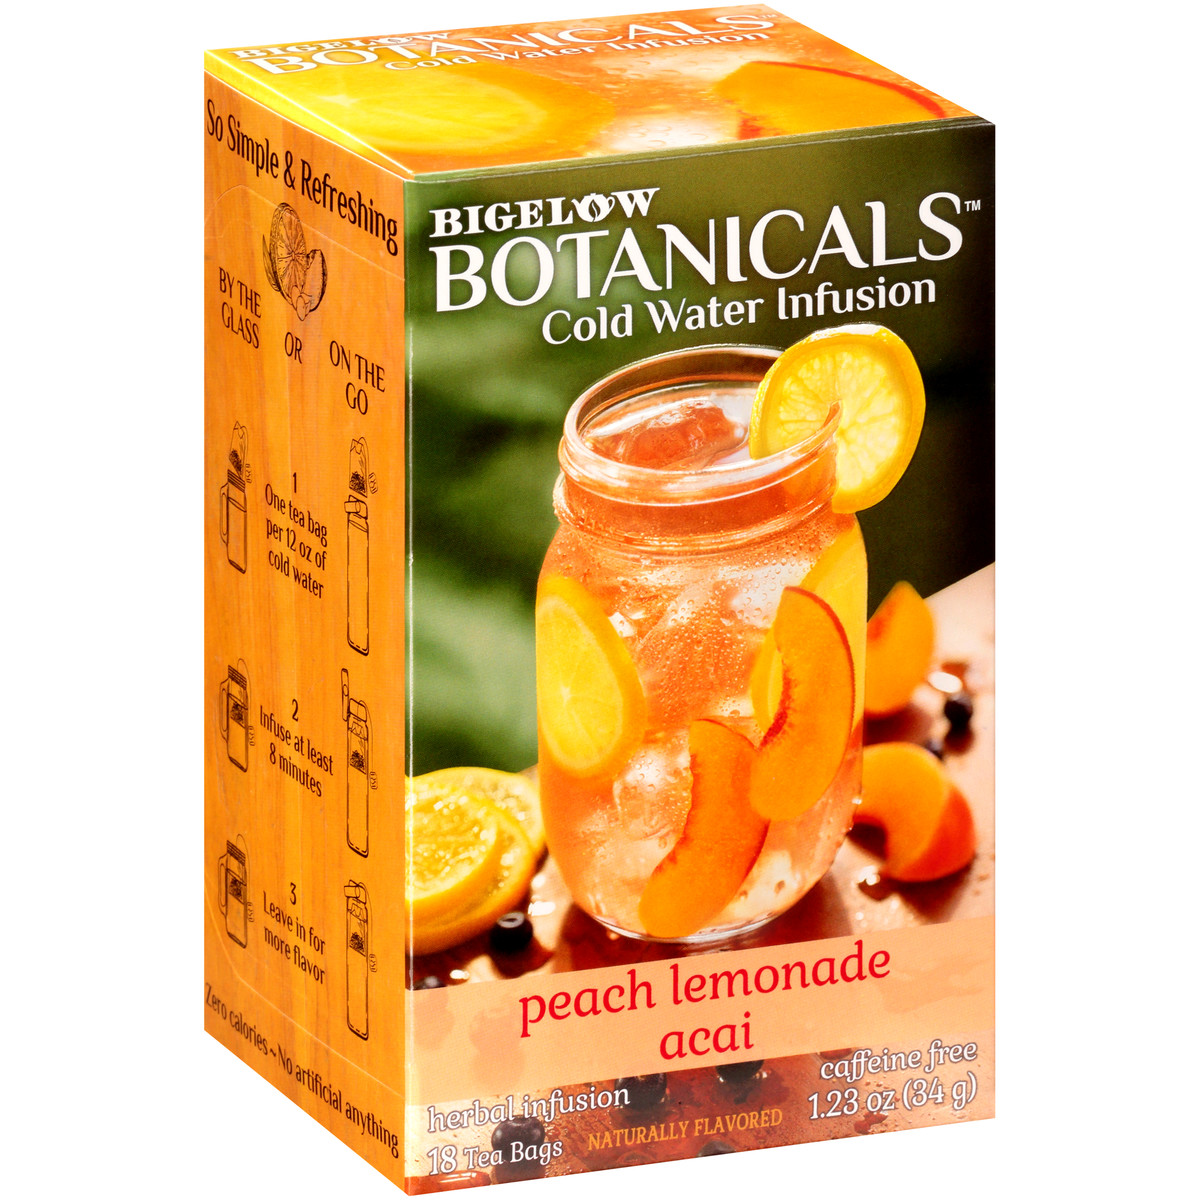 Peach Lemonade Acai Cold Water Infusion Caffeine Free 108 TB (case of 6 boxes)